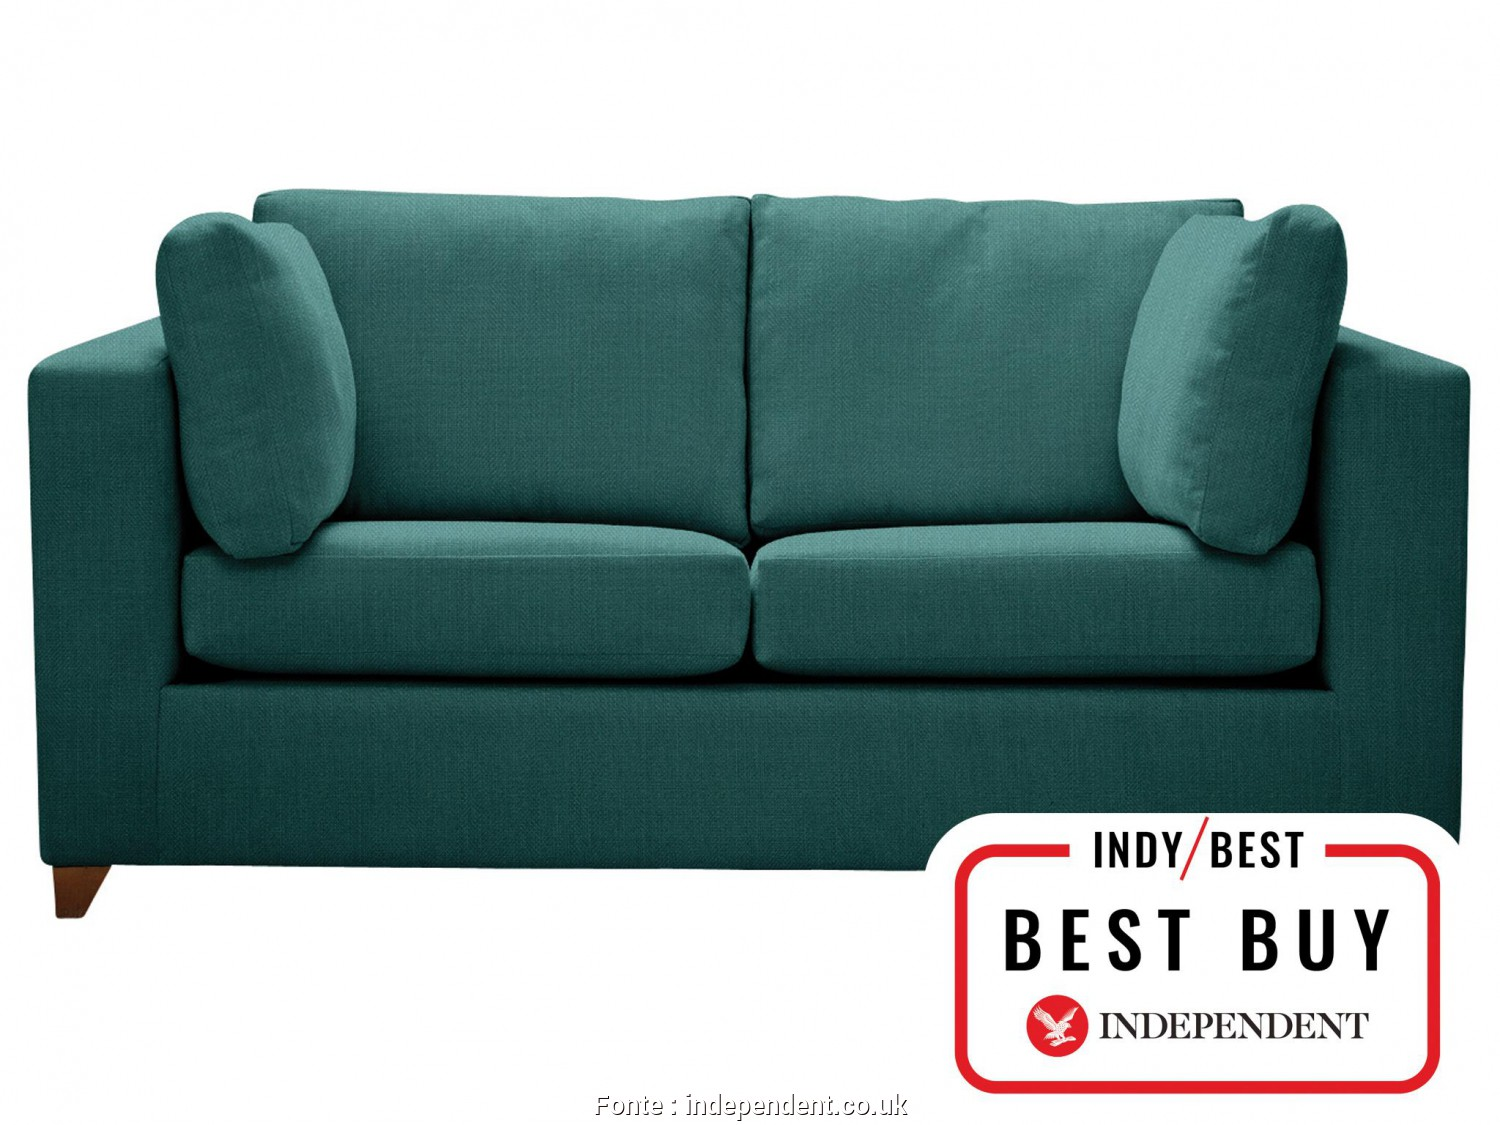 Ikea Asarum Sofa, Review, Buono If You